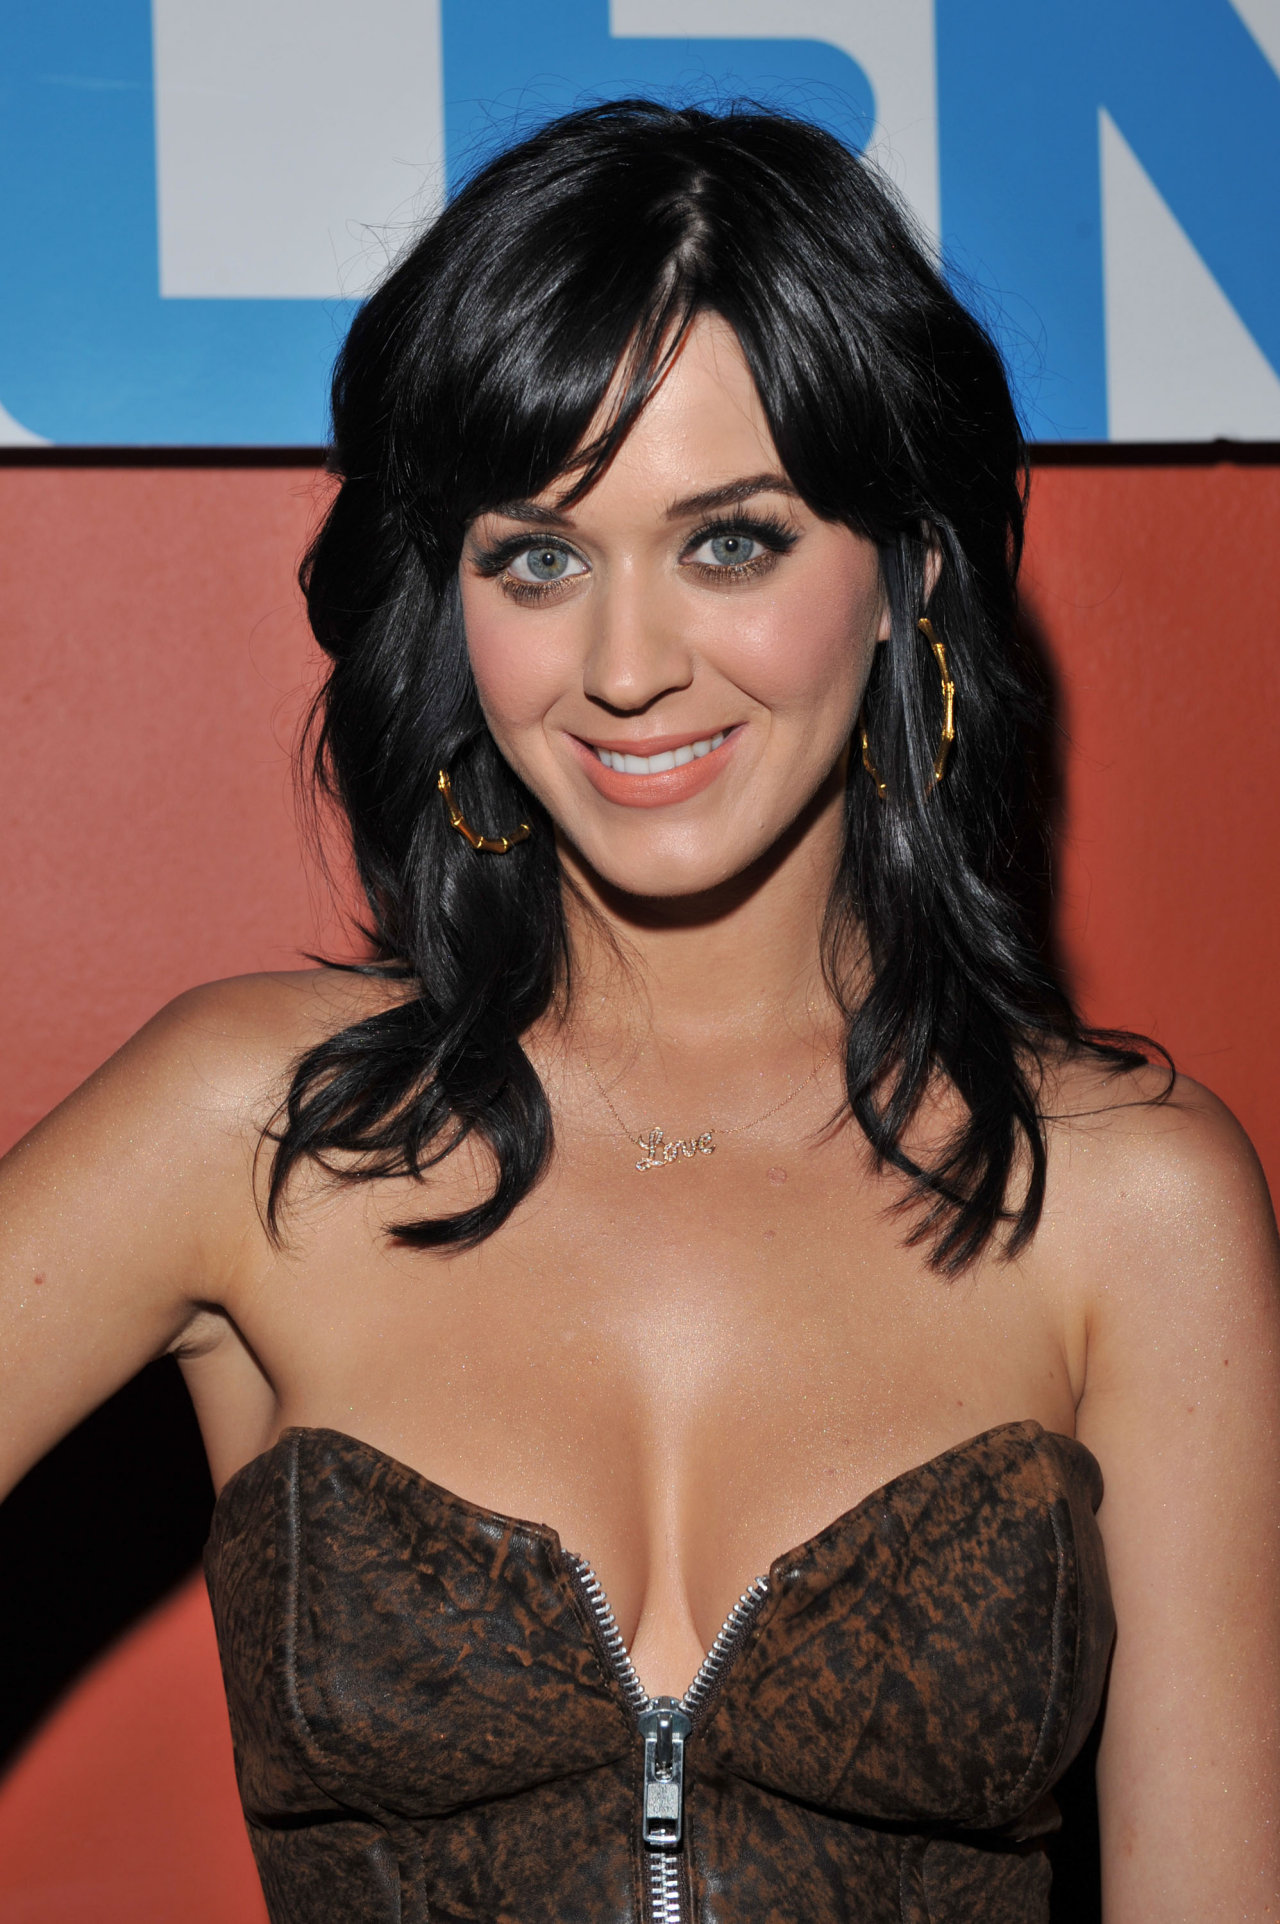 Katy Perry Wallpapers (13676). Beautiful Katy Perry Pictures And Wallpaper